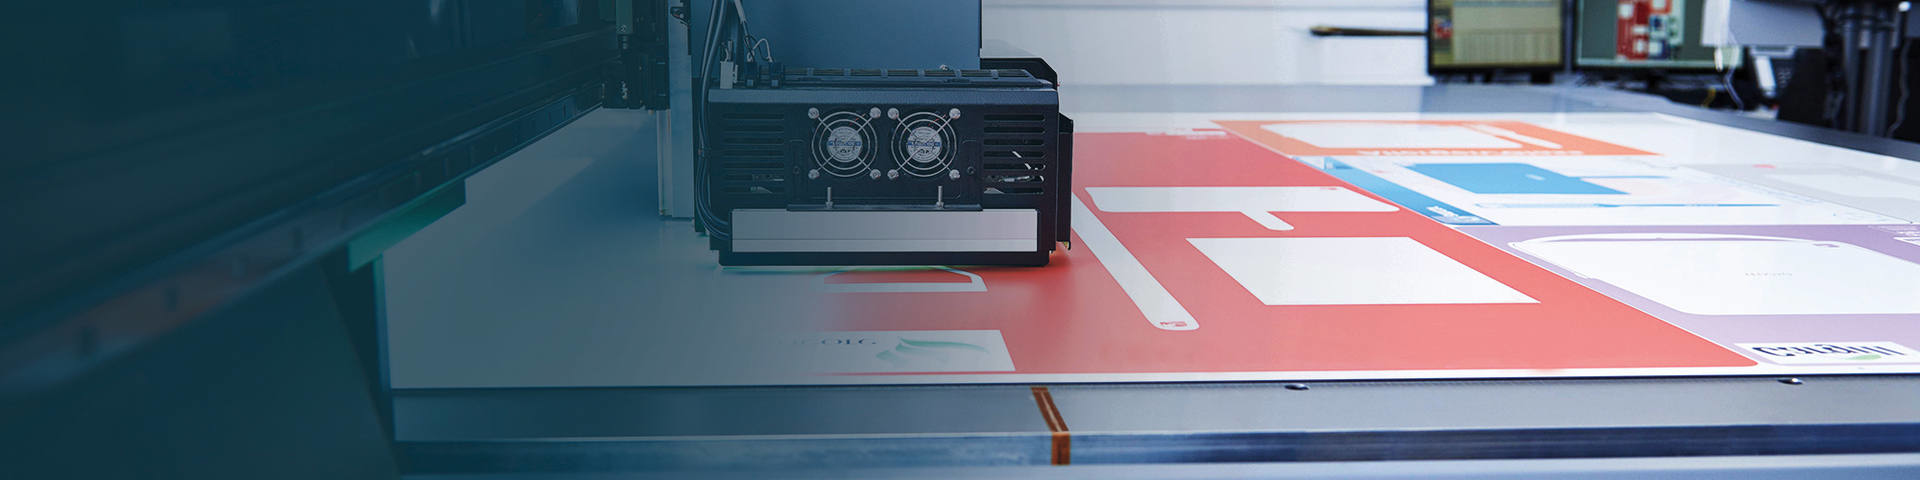 "<span style=""font-weight:400;"">All Klipspringer shadow boards are printed<br> in our state-of-the-art inhouse printshop</span>"